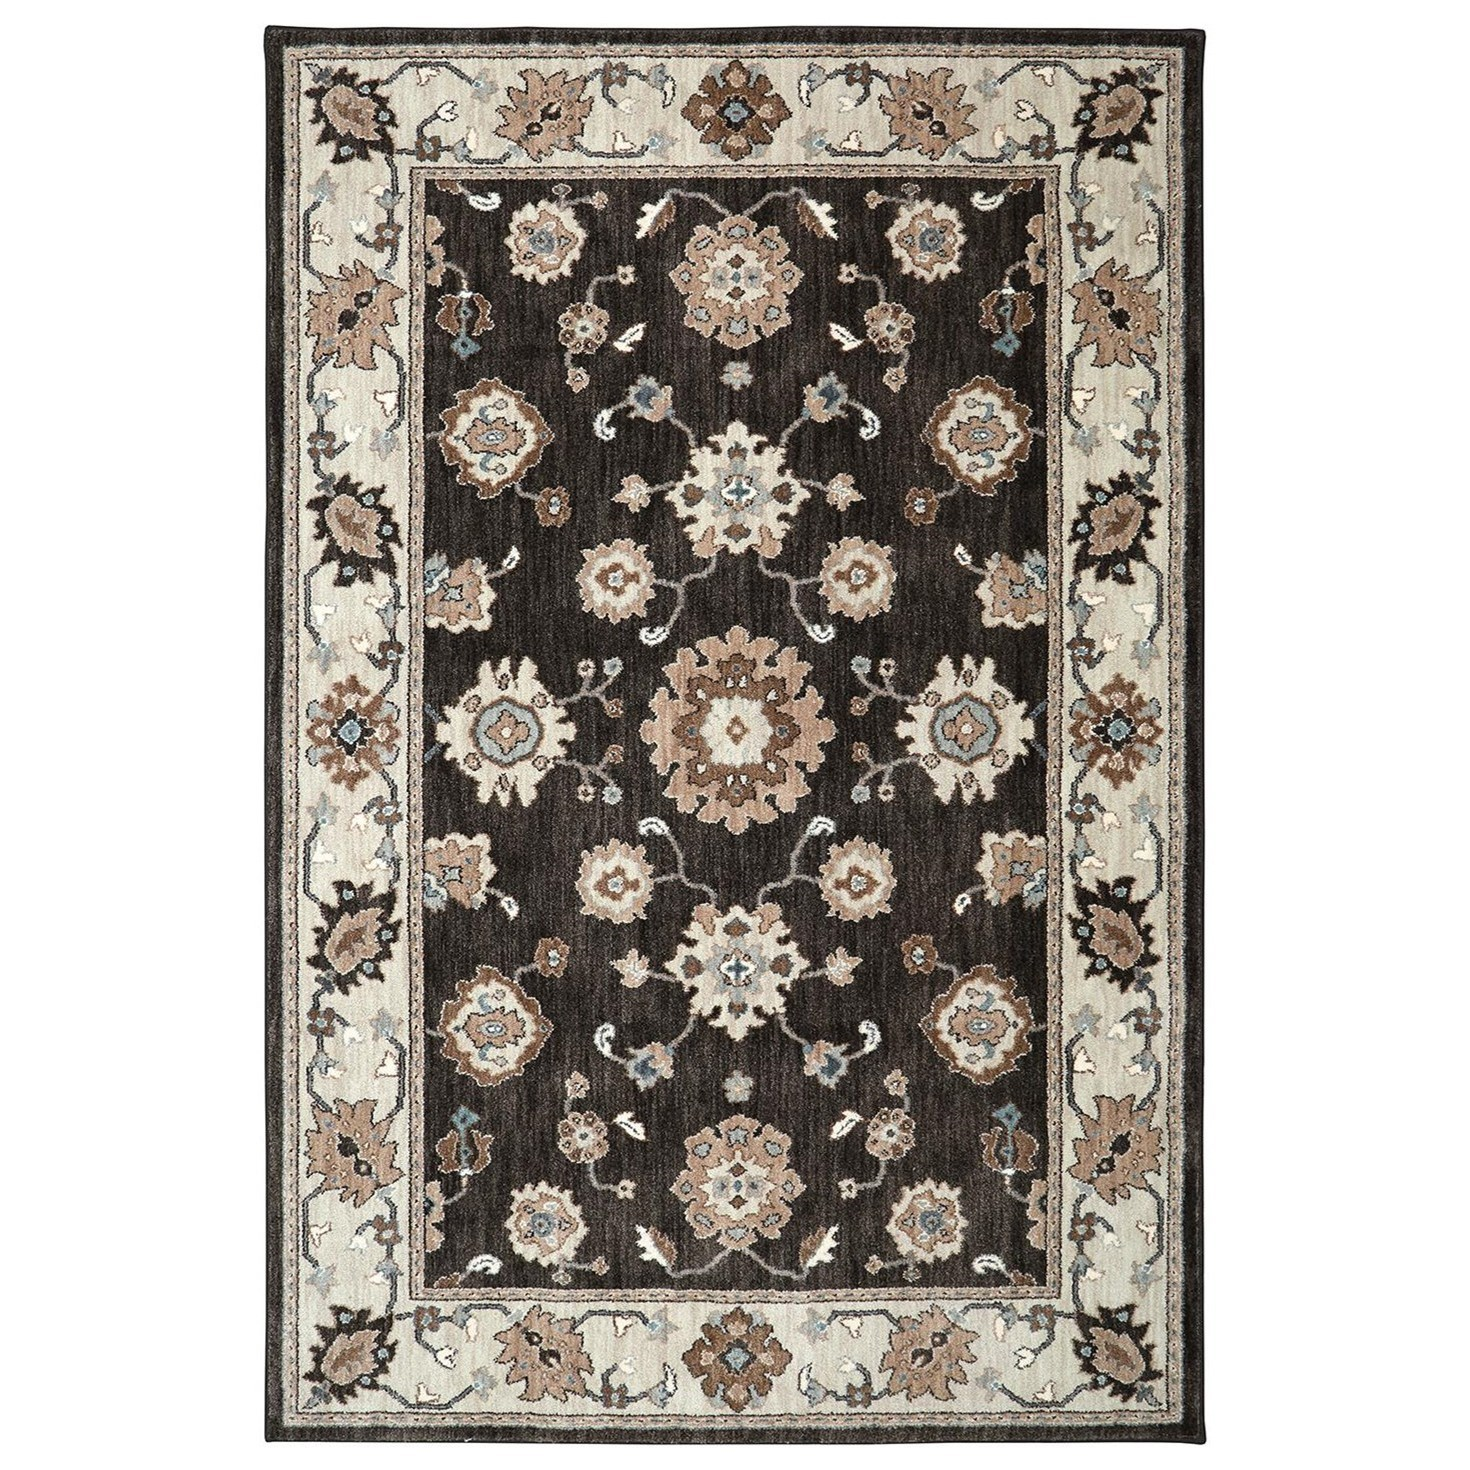 Karastan Rugs Euphoria 3'6x5'6 Kirkwall Brown Rug - Item Number: 90644 80175 042066